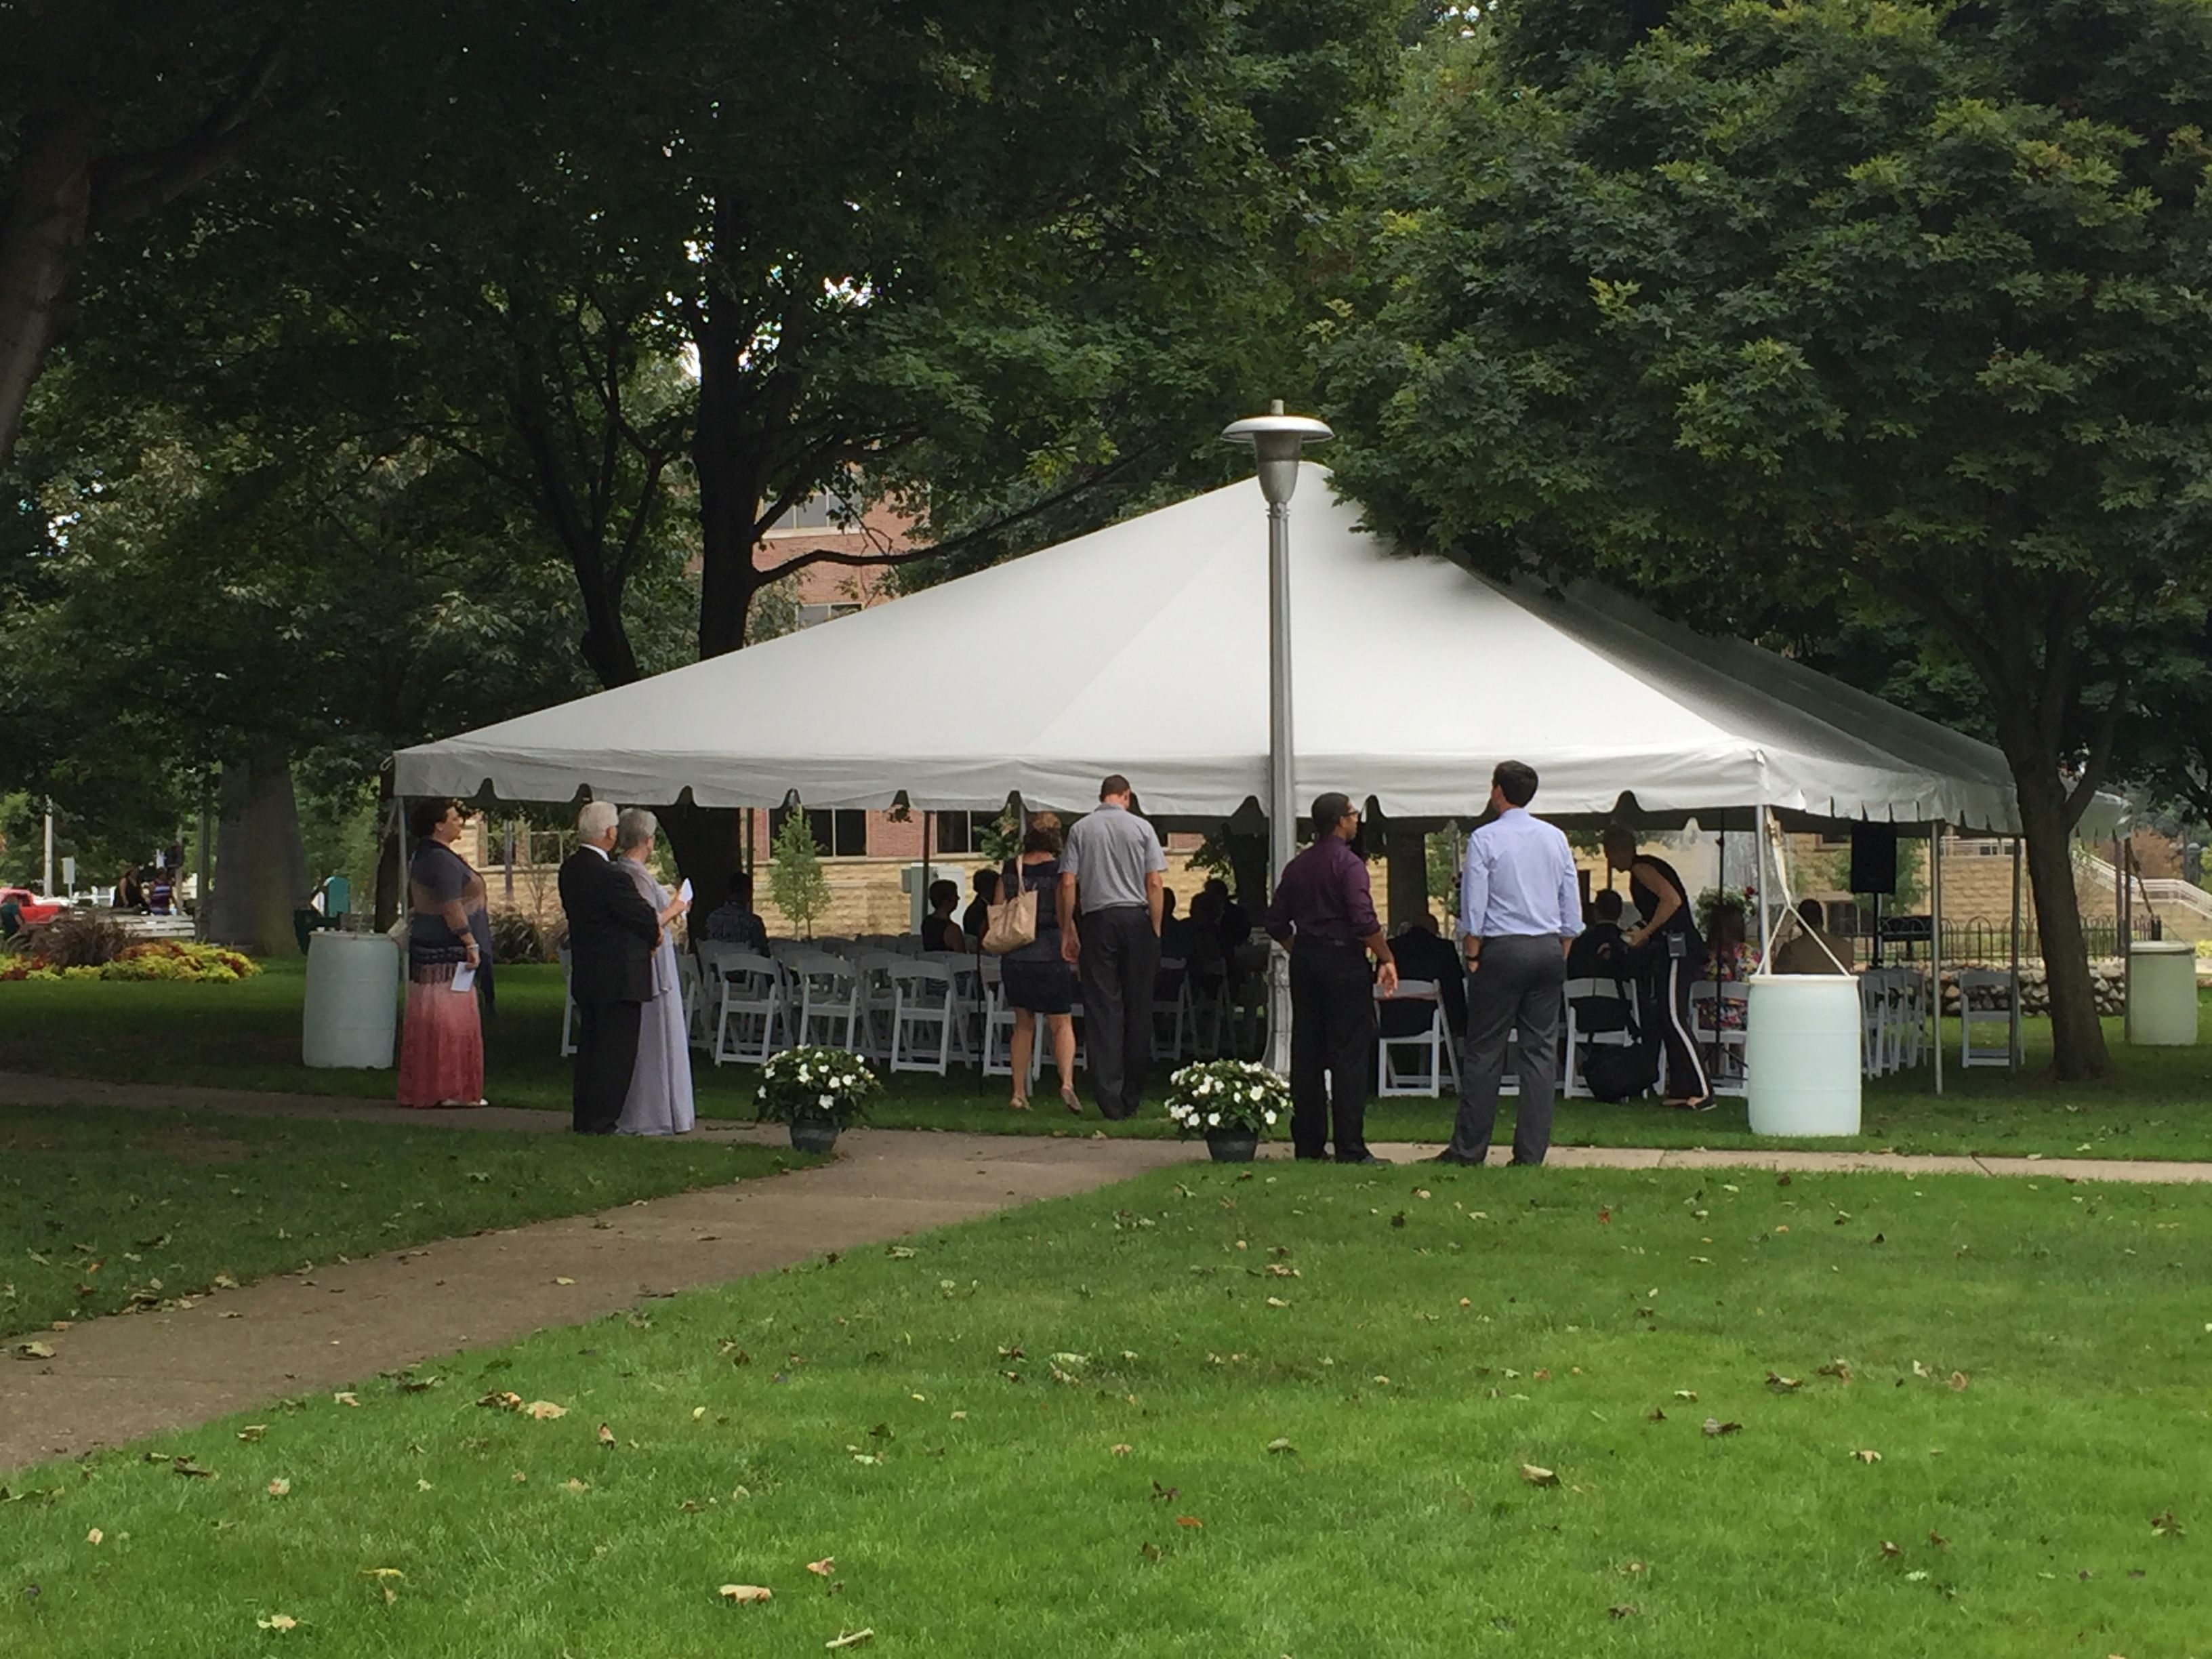 30x40 White Frame Tent used for a Wedding at Central Park in Grand Haven Mi & 30x40 White Frame Tent used for a Wedding at Central Park in Grand ...